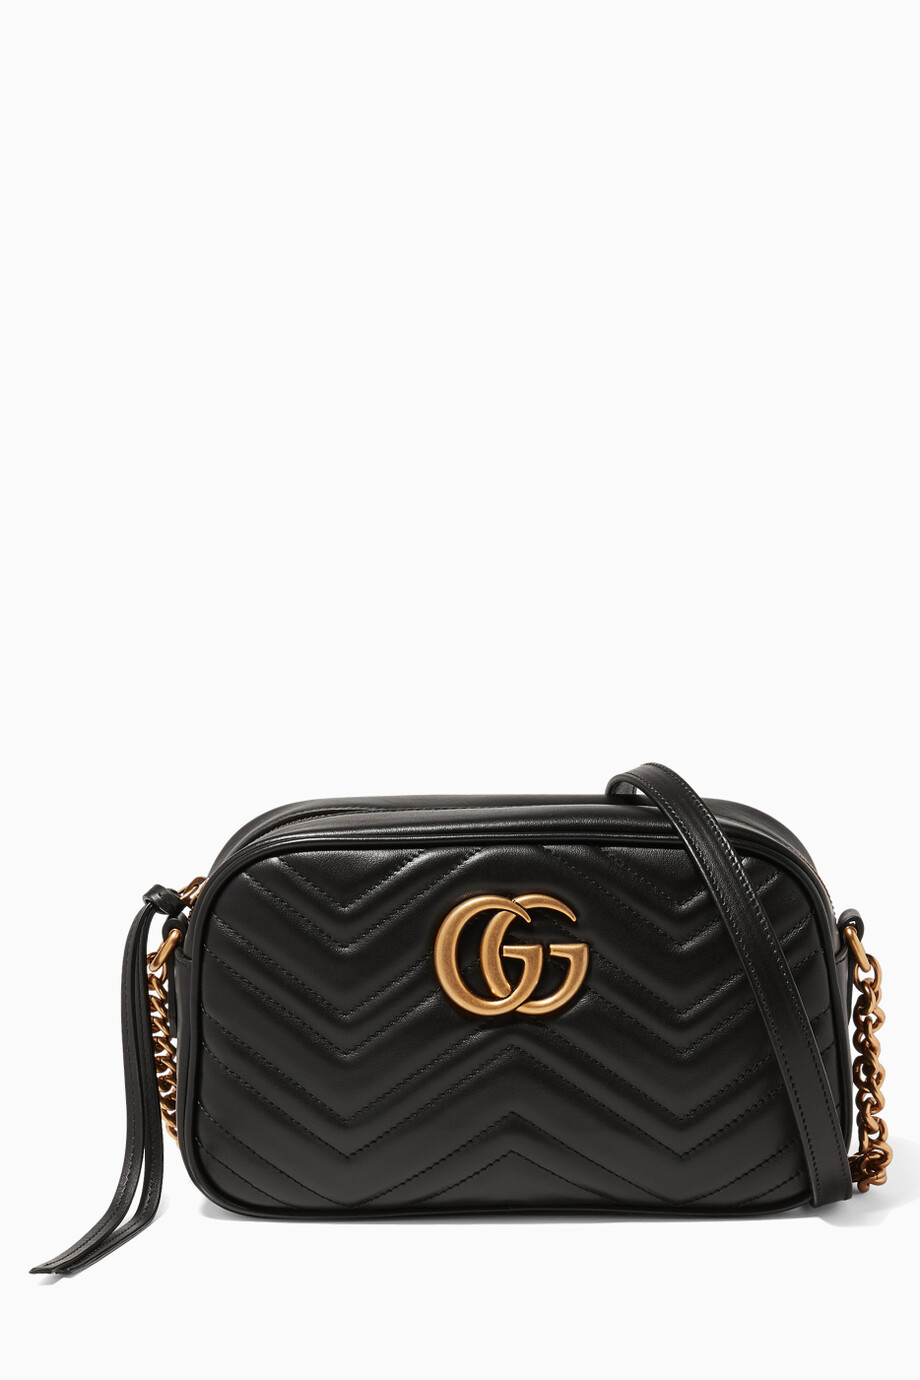 cbed9da41257 Shop Gucci Black Black Mini GG Marmont Matelassé Camera Bag for ...